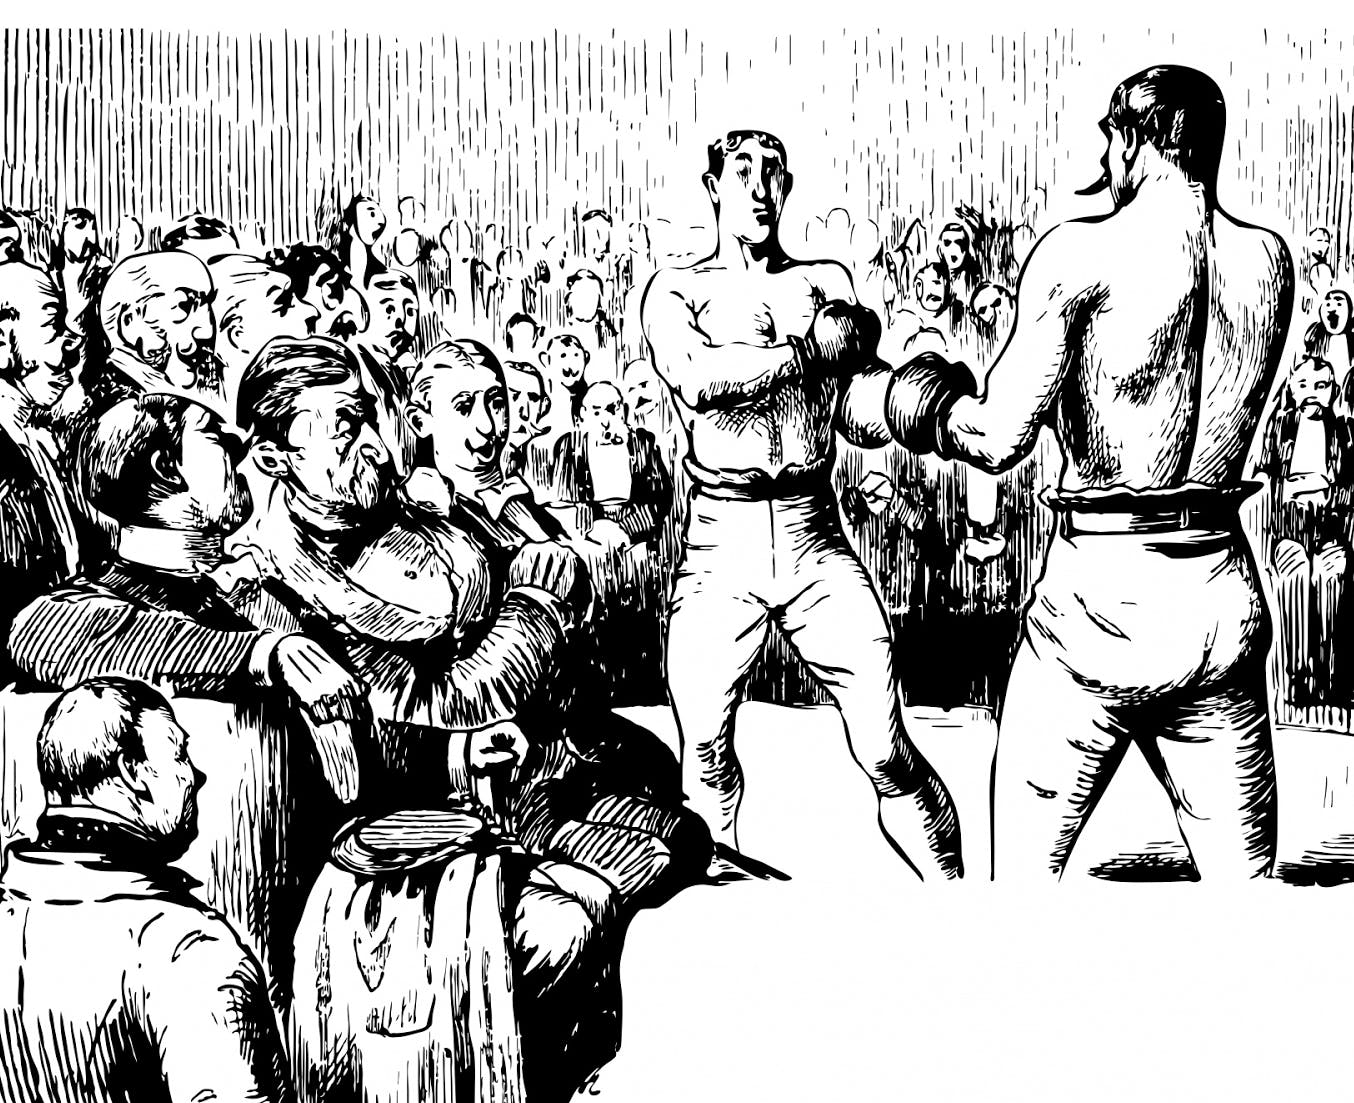 graphic of old time boxing match